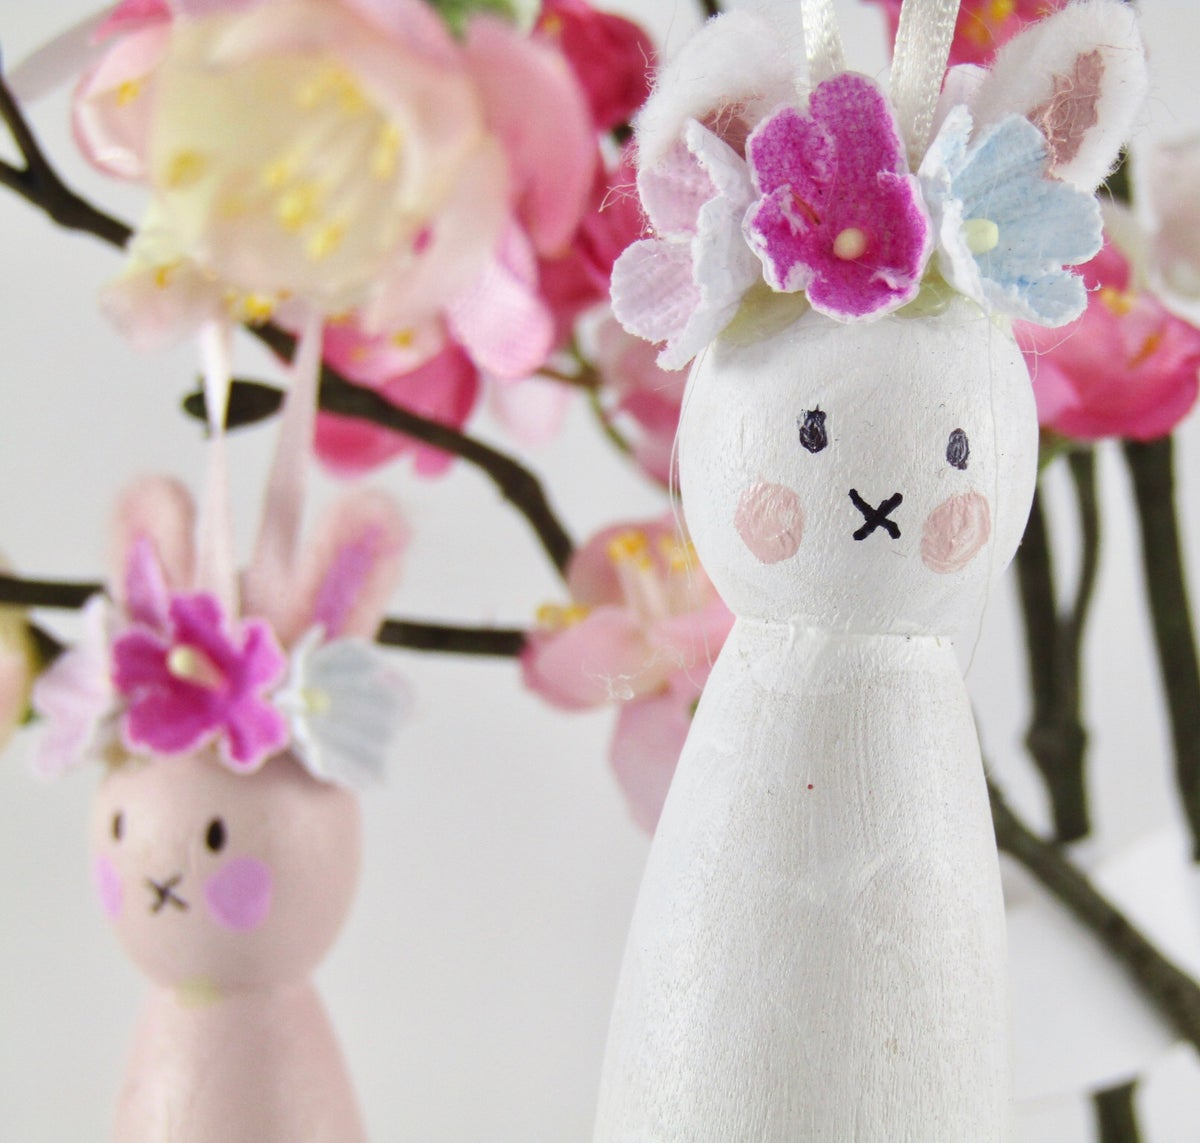 Image of Painted Wooden Peg Bunnies